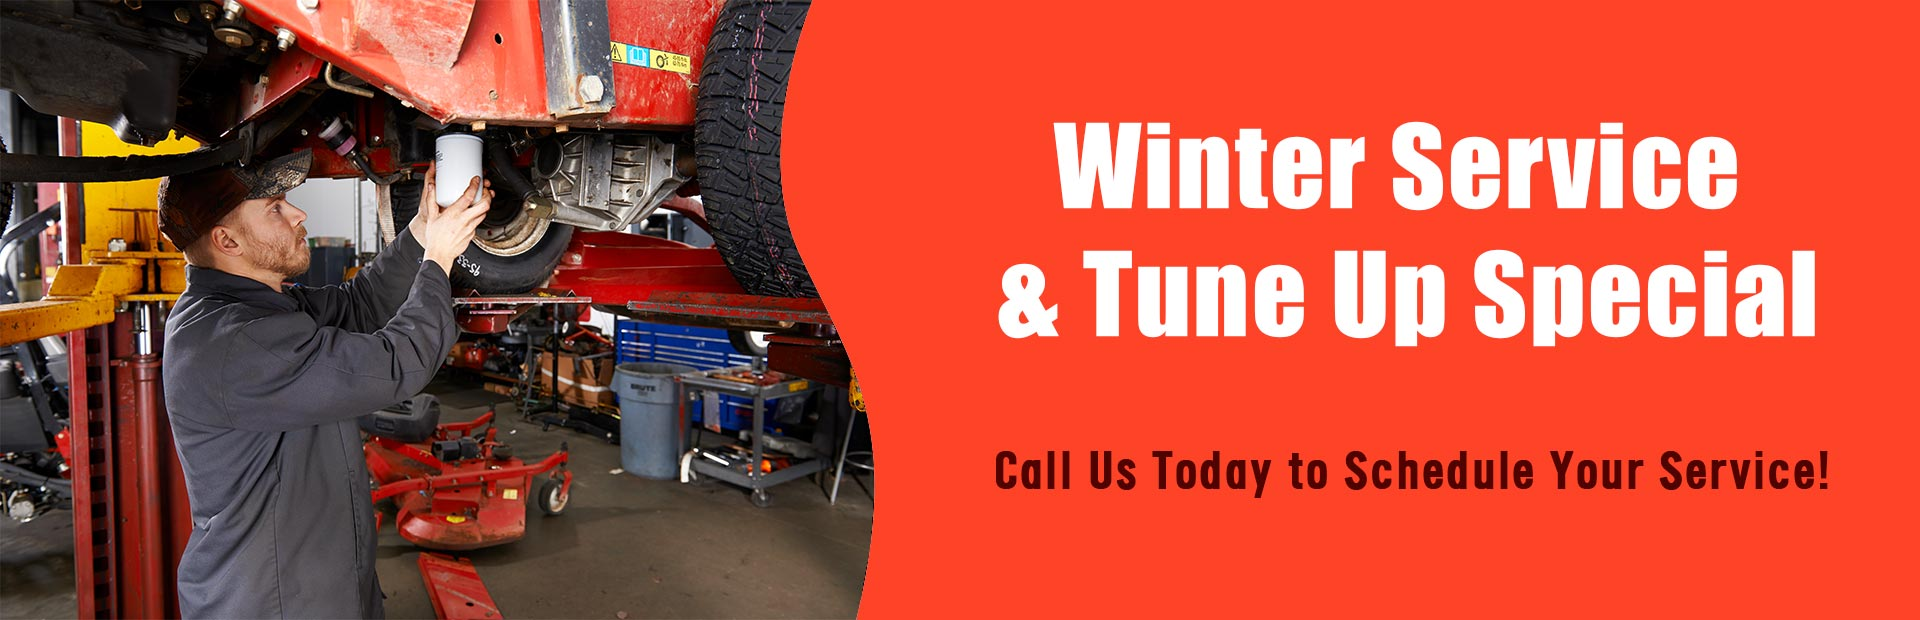 Winter service & tune up special: Call us today to schedule your service!